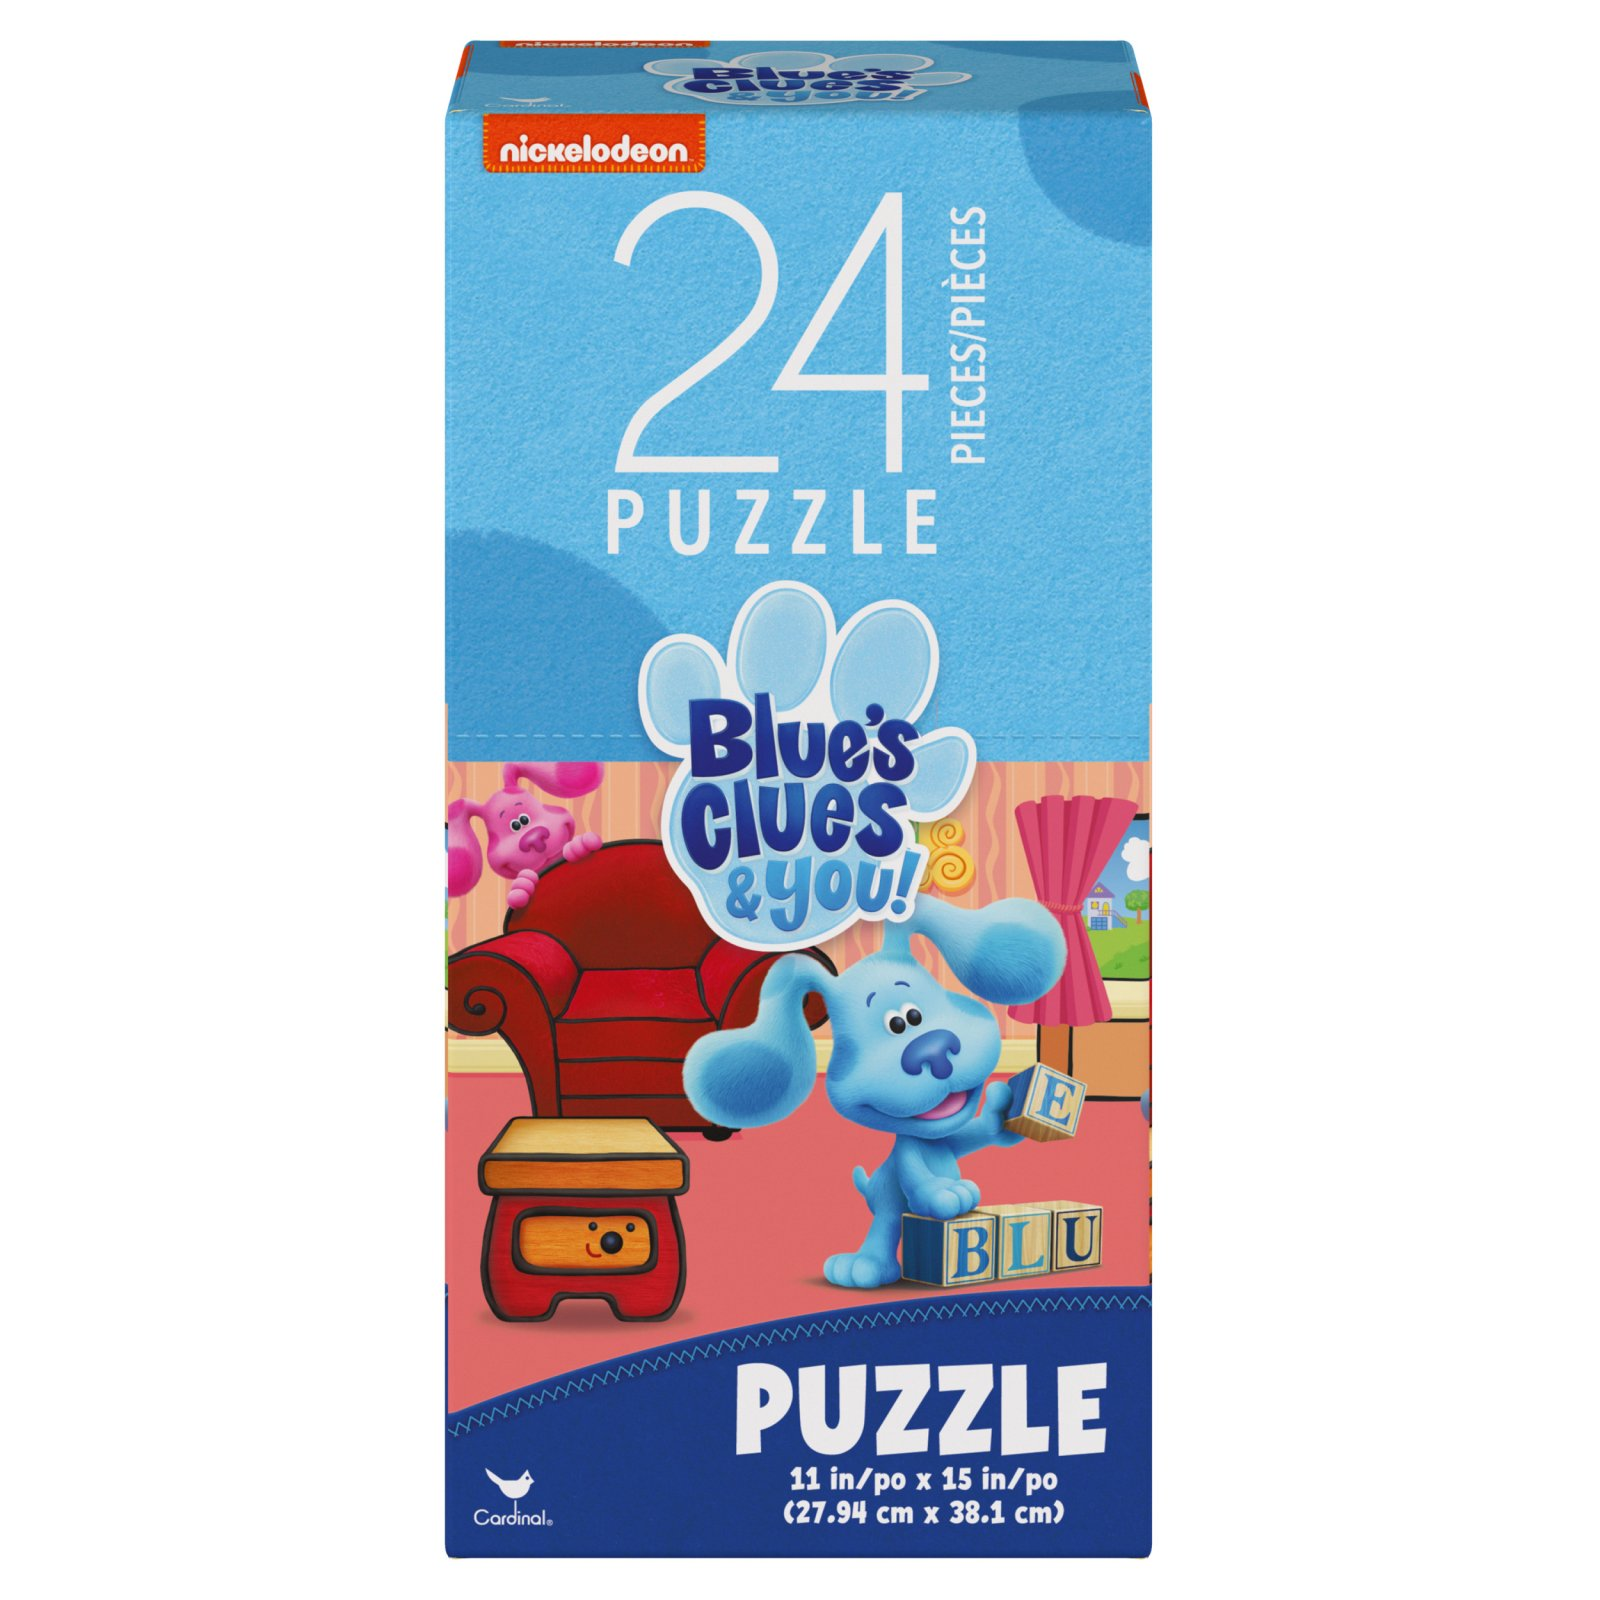 Nickelodeon Blue's Clues & You 24 Puzzle